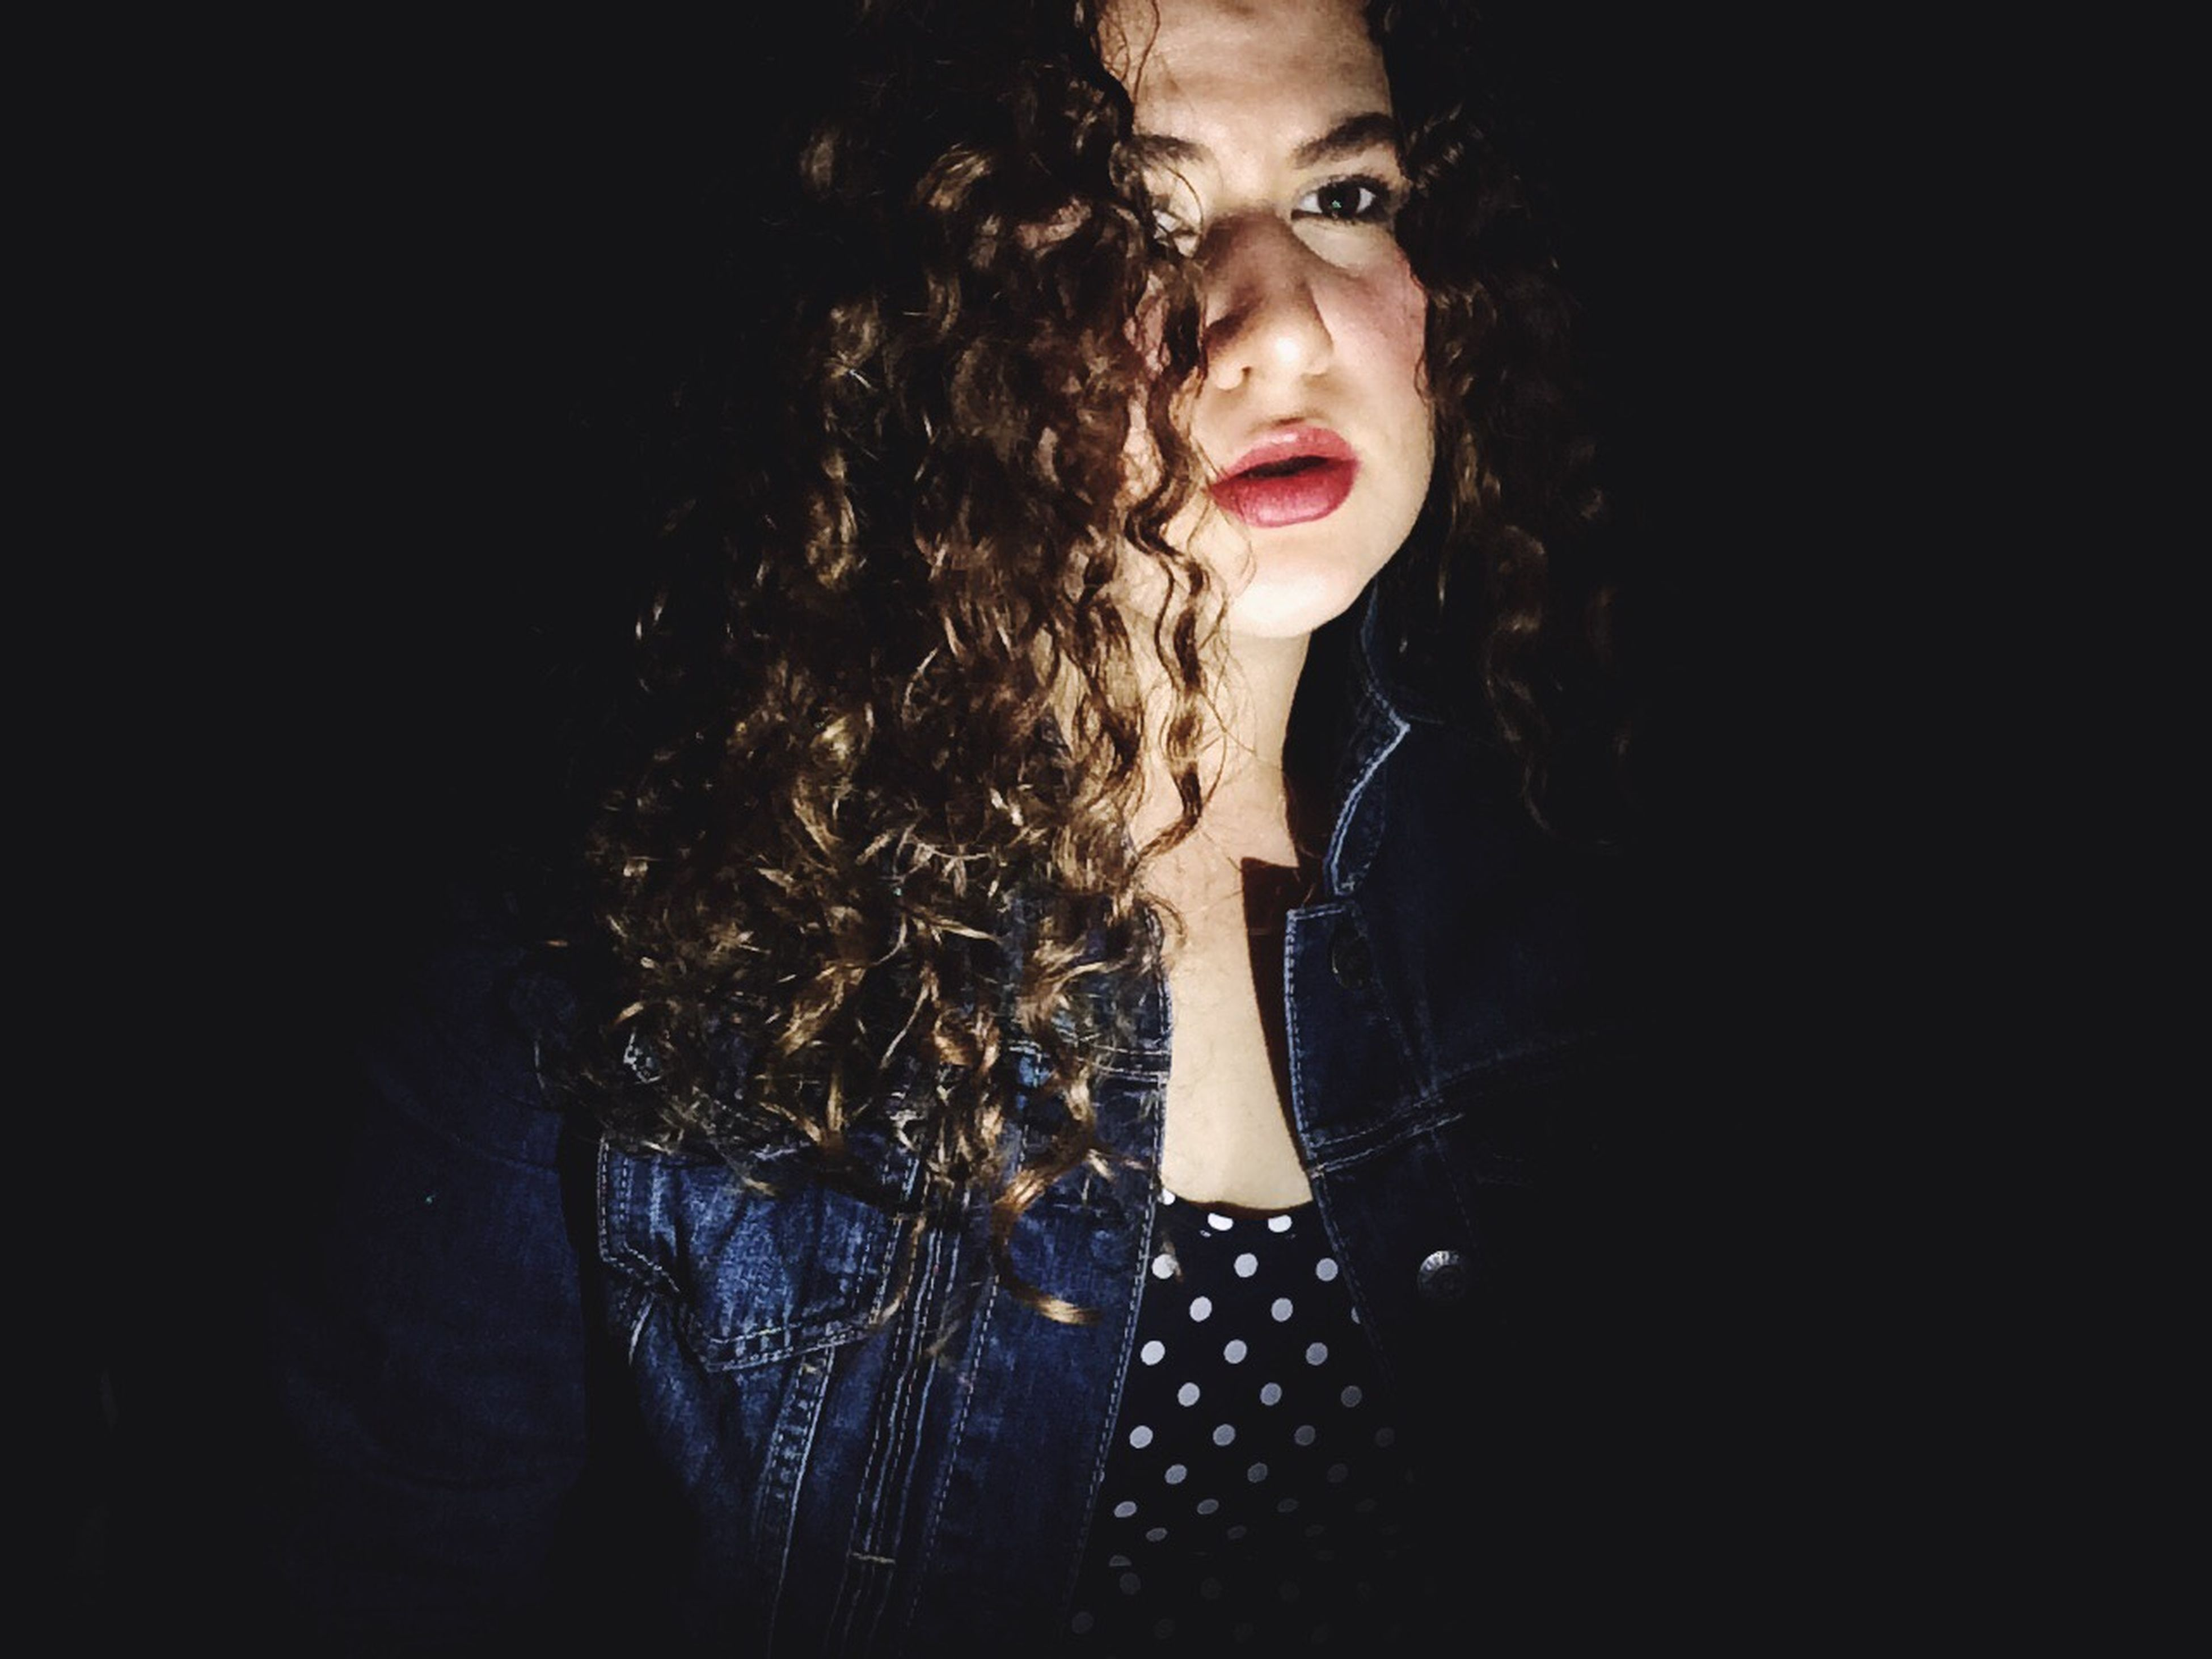 one person, adults only, only women, one woman only, headshot, front view, young adult, lipstick, black background, red lipstick, human body part, one young woman only, adult, young women, people, close-up, portrait, night, curly hair, indoors, human lips